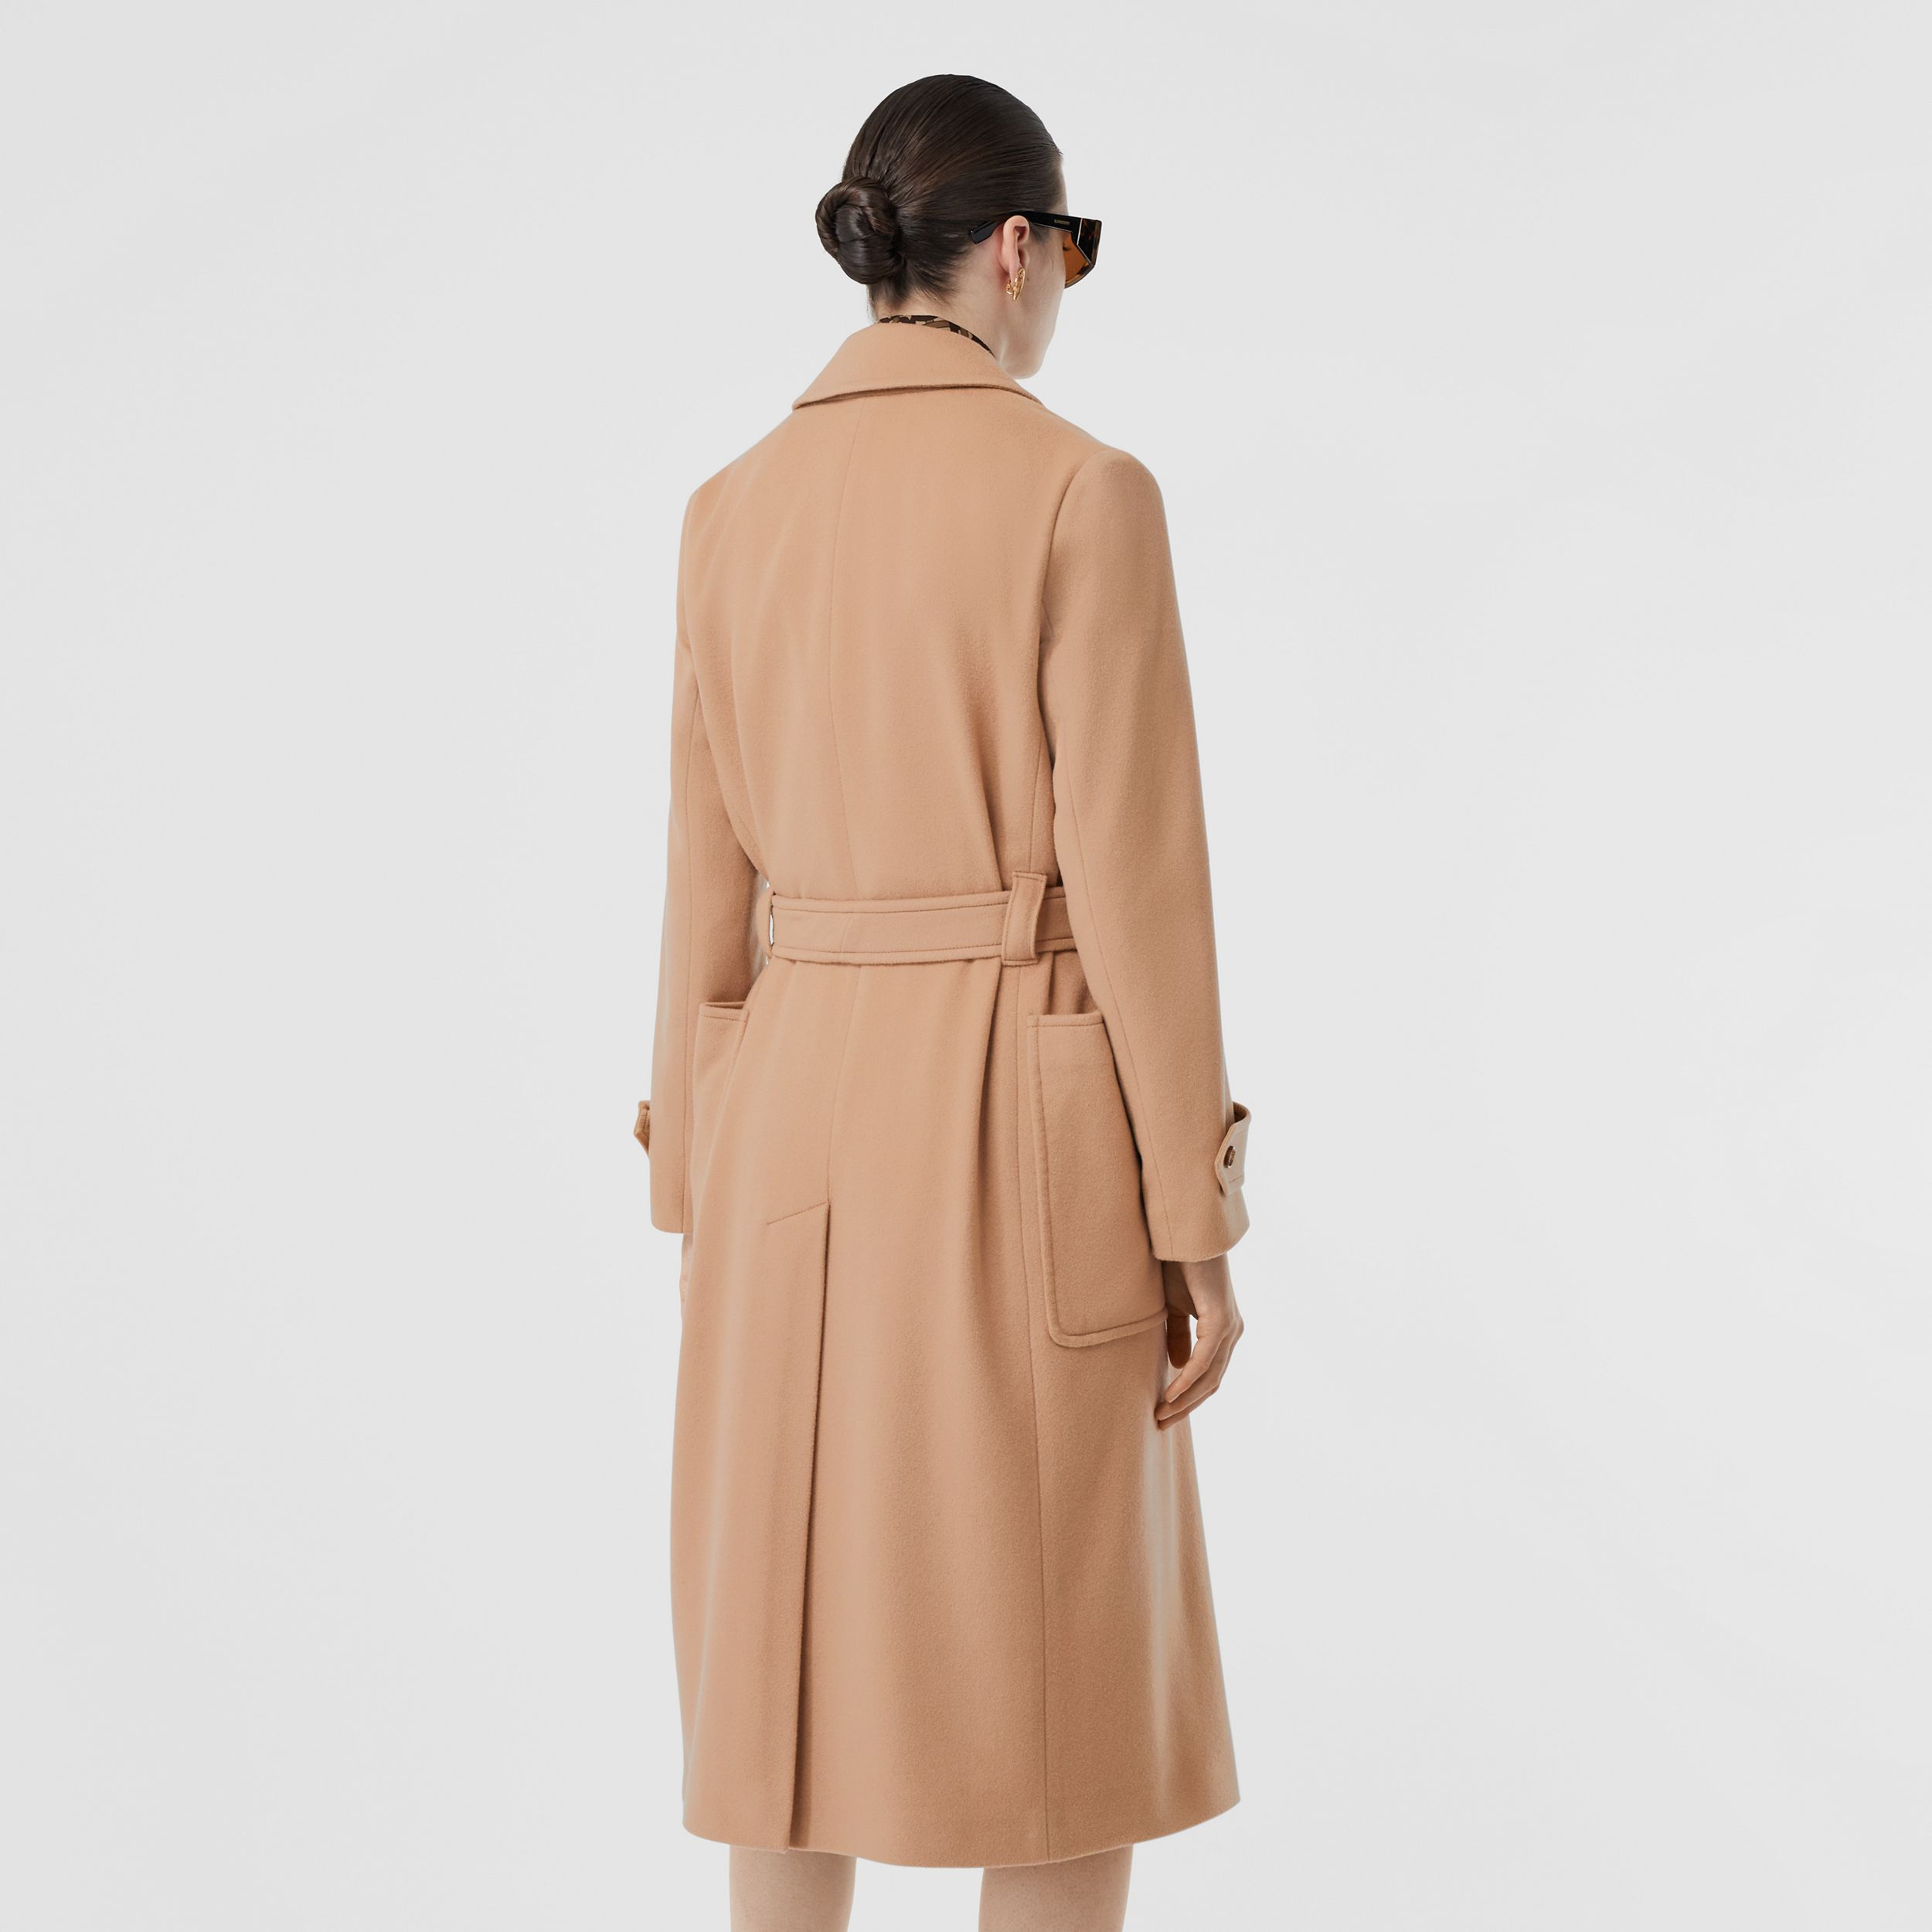 Cashmere Wrap Coat in Modern Beige - Women | Burberry - 3